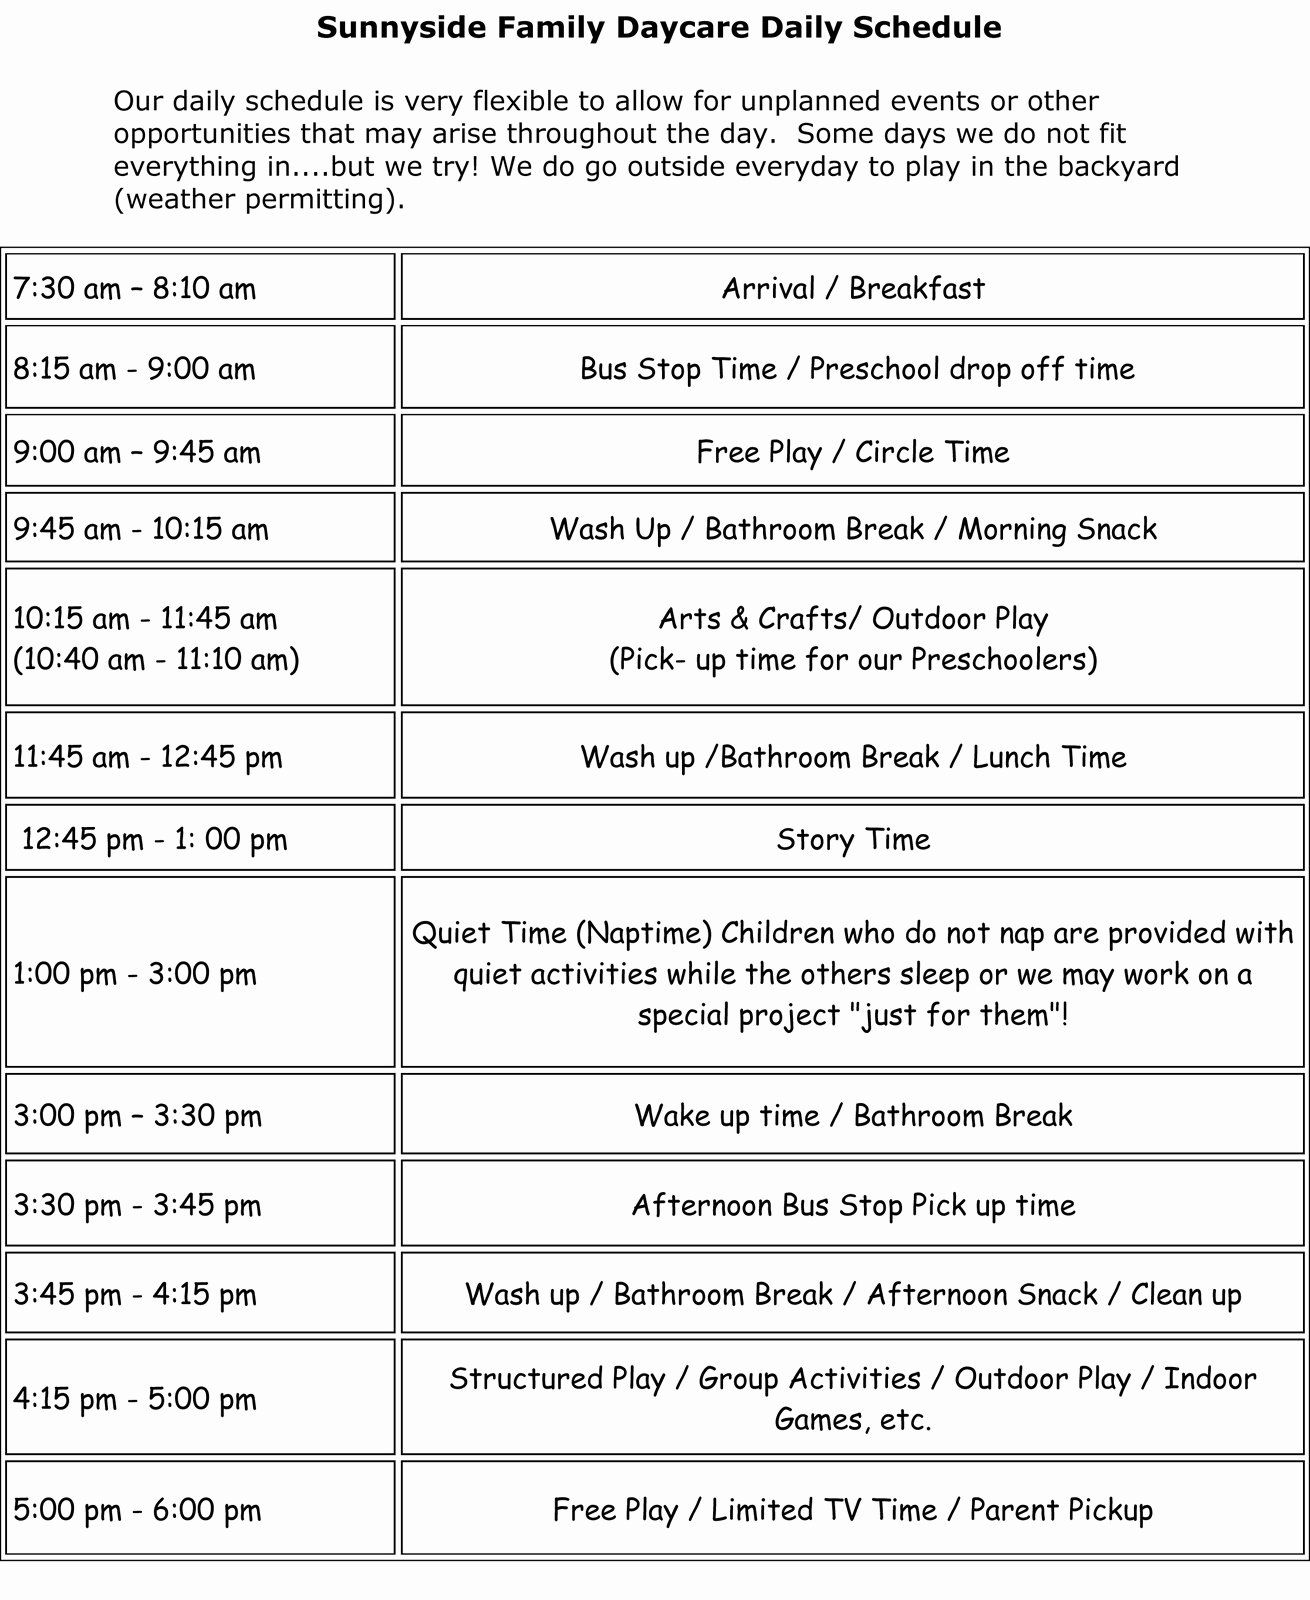 Daycare Staff Schedule Template Awesome Sunnyside Family Daycare Daily Schedule Meal Plans Daily Schedule Template Daycare Daily Schedule Daily Schedule